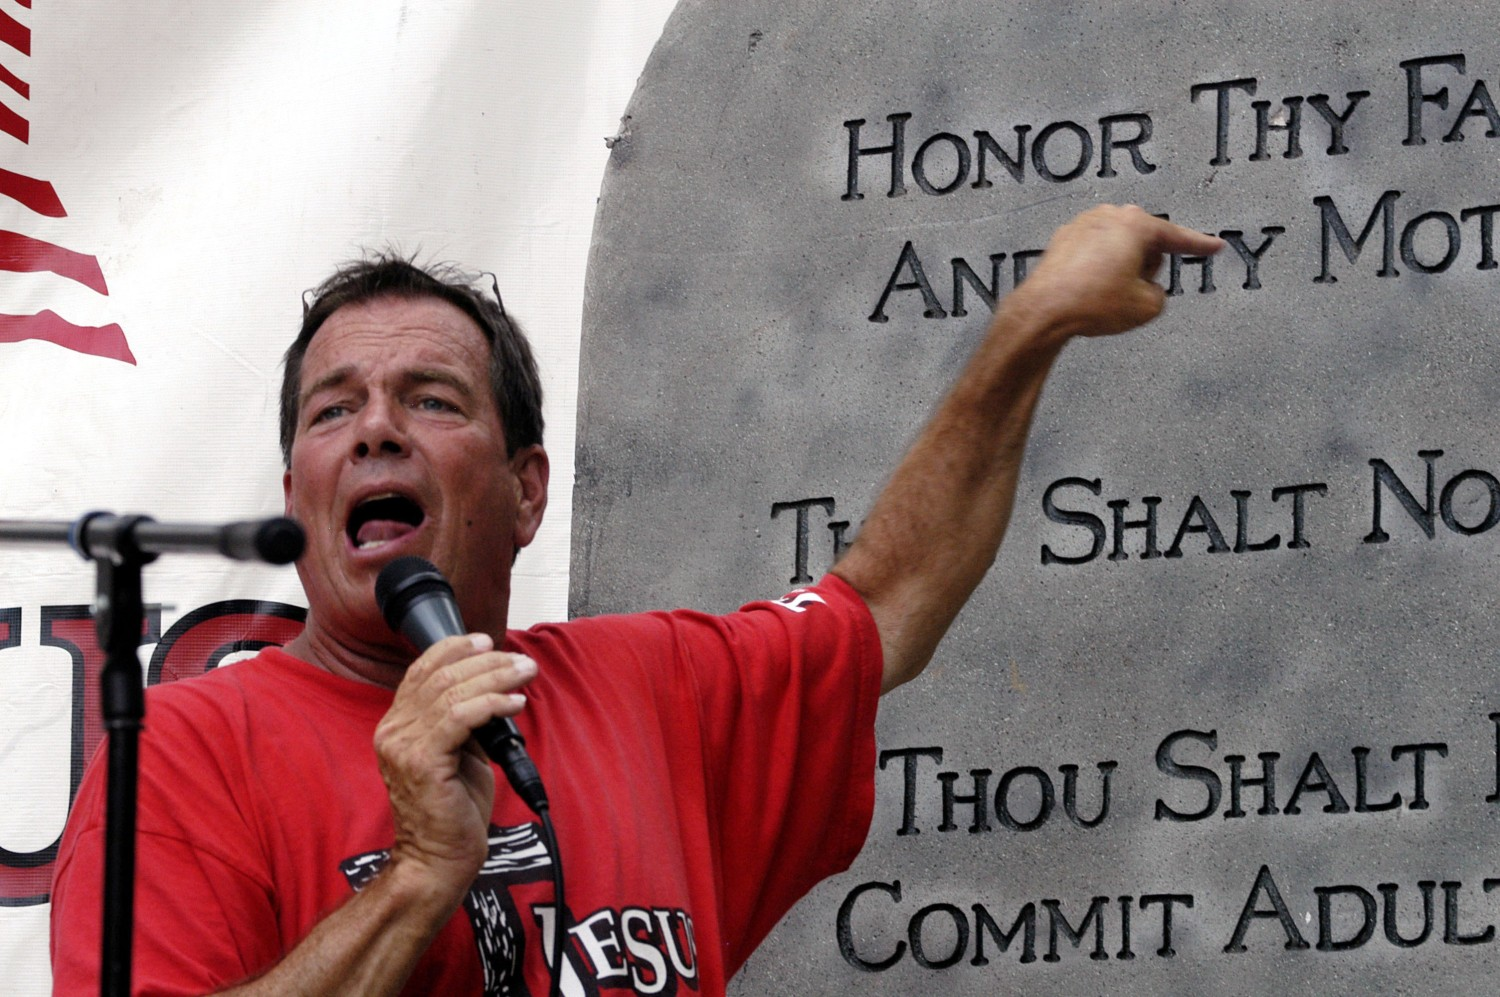 Flip Benham at a rally in 2006 (Getty Images)